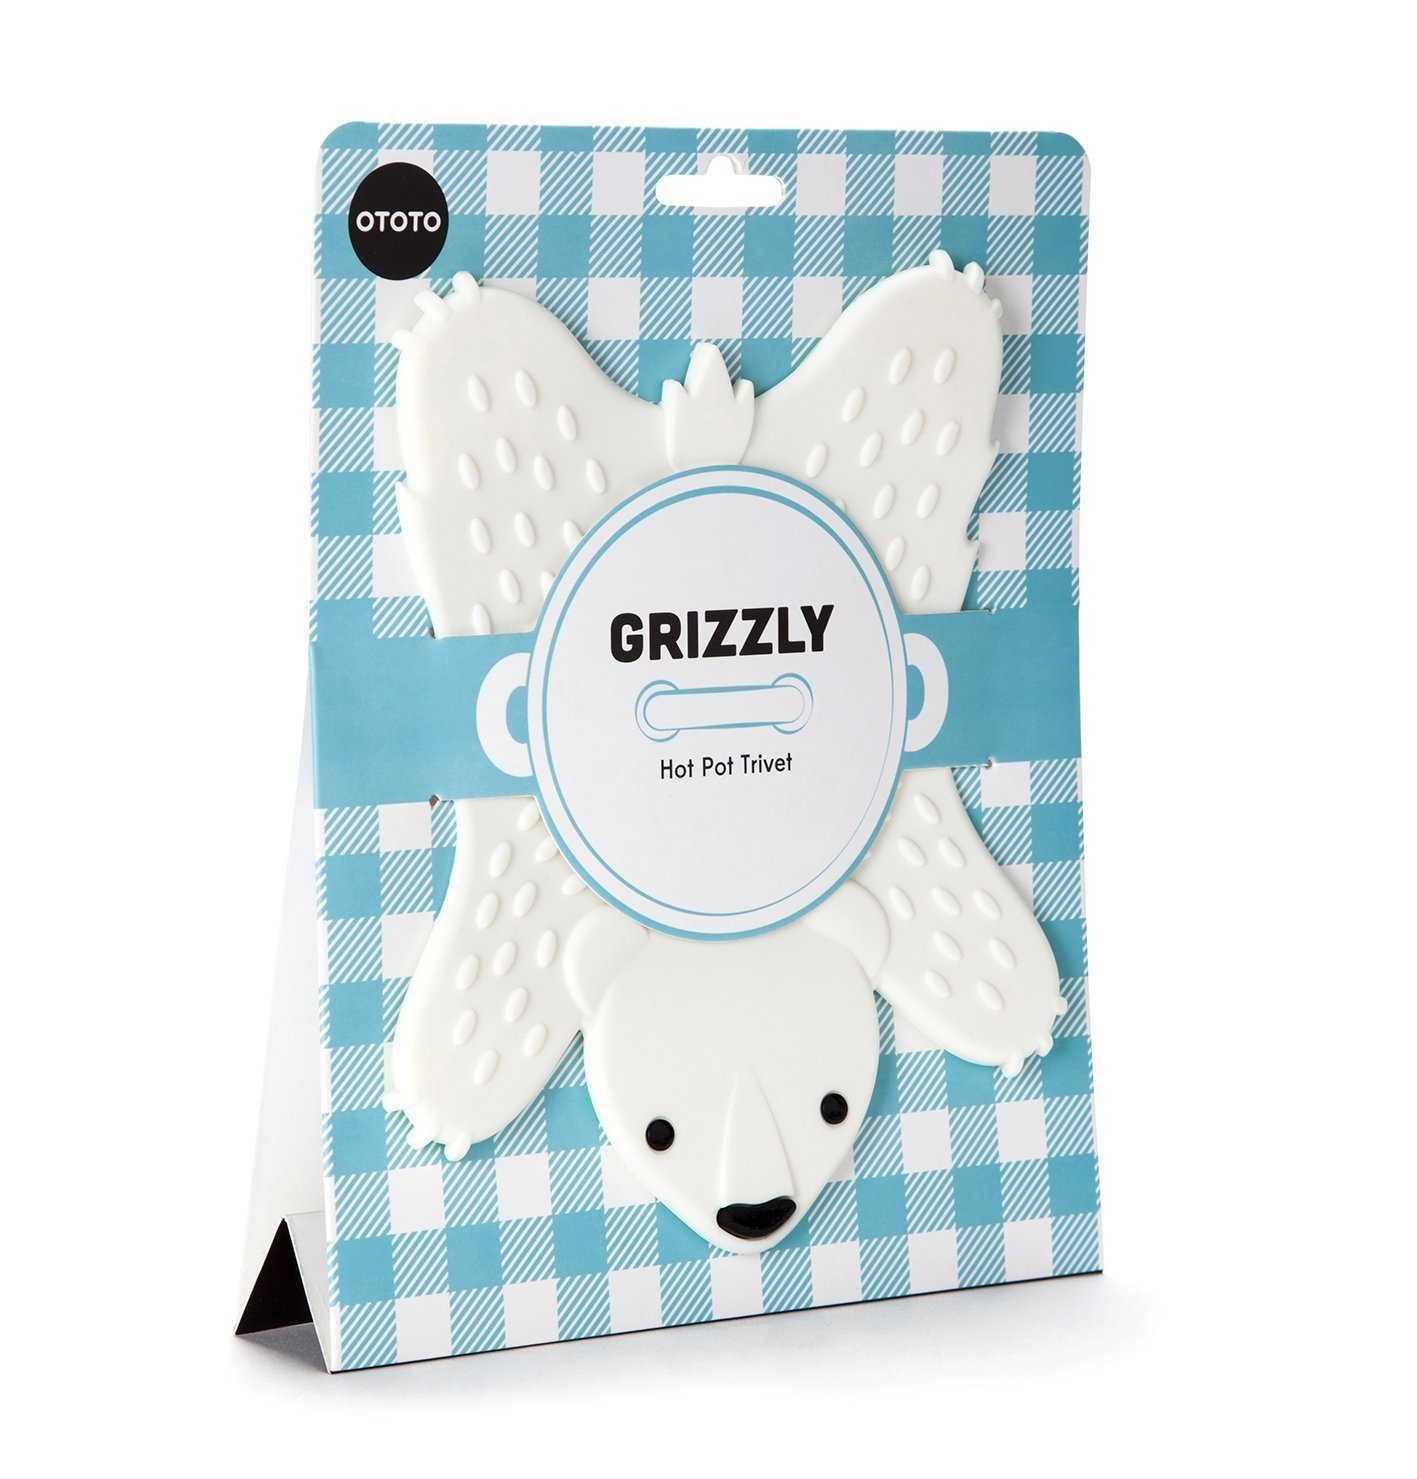 Grizzly Hot Pot Trivet - White